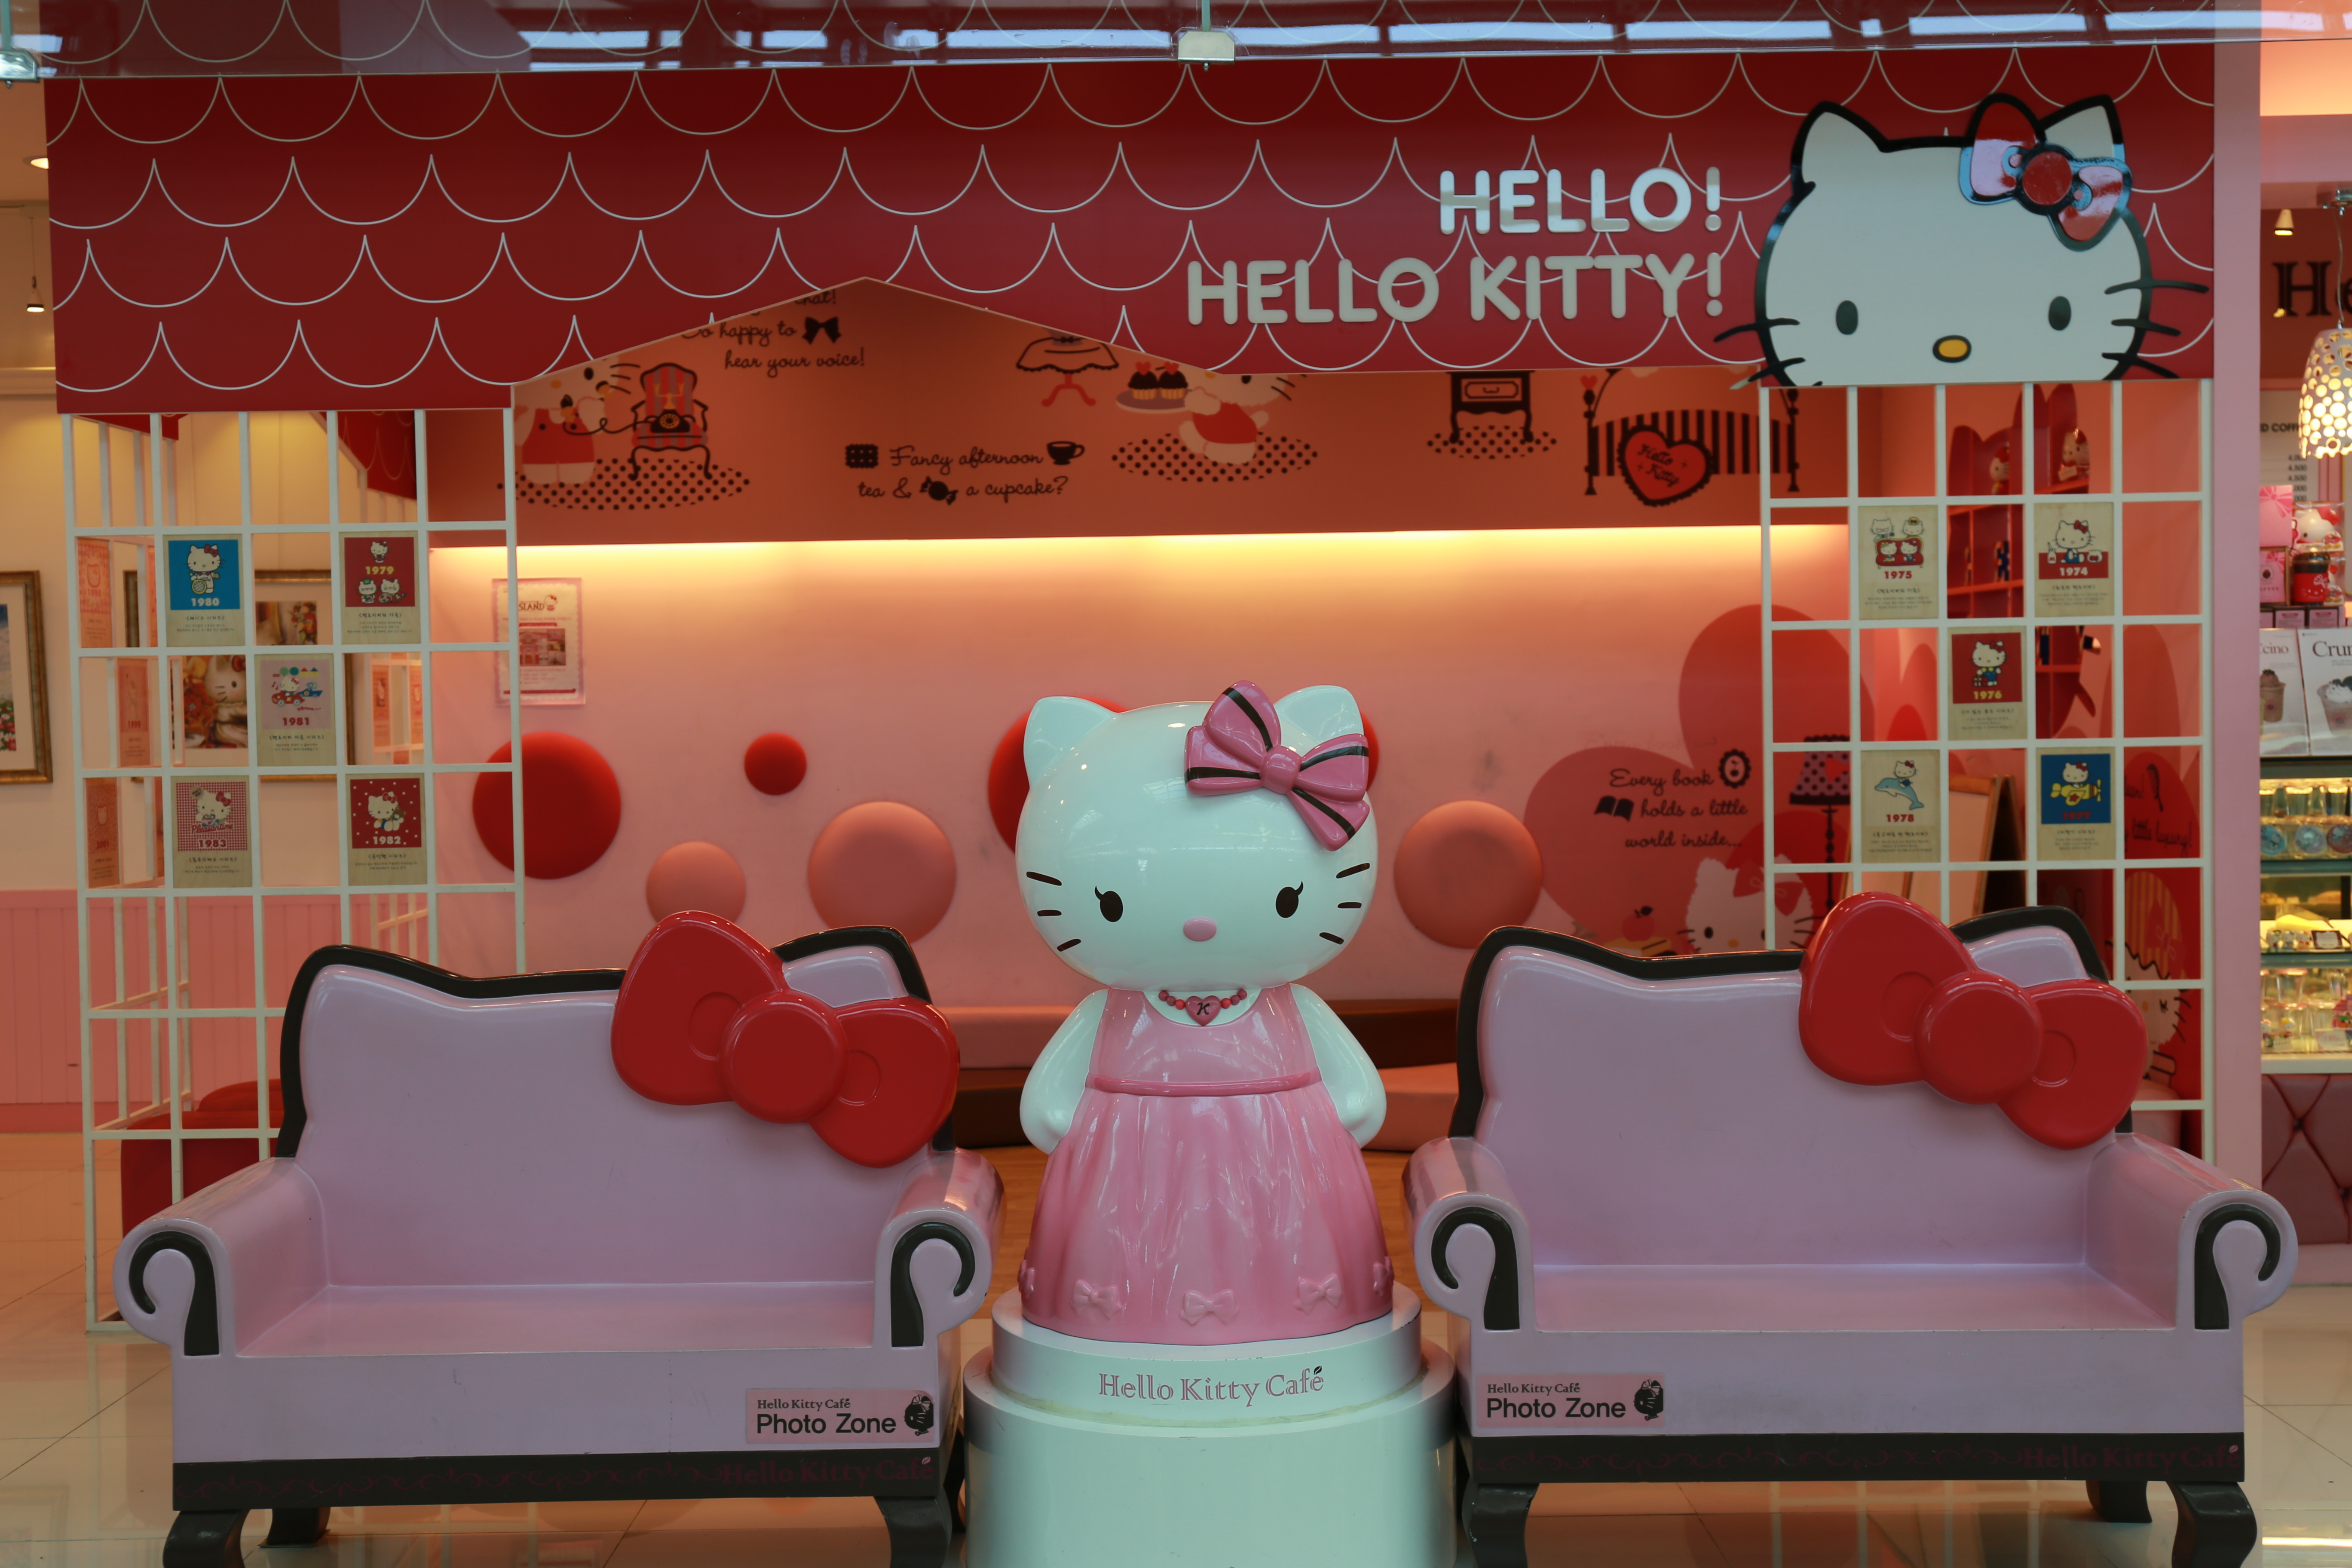 Hello, Hello Kitty : A Theme Cafe at Seoul Incheon Airport